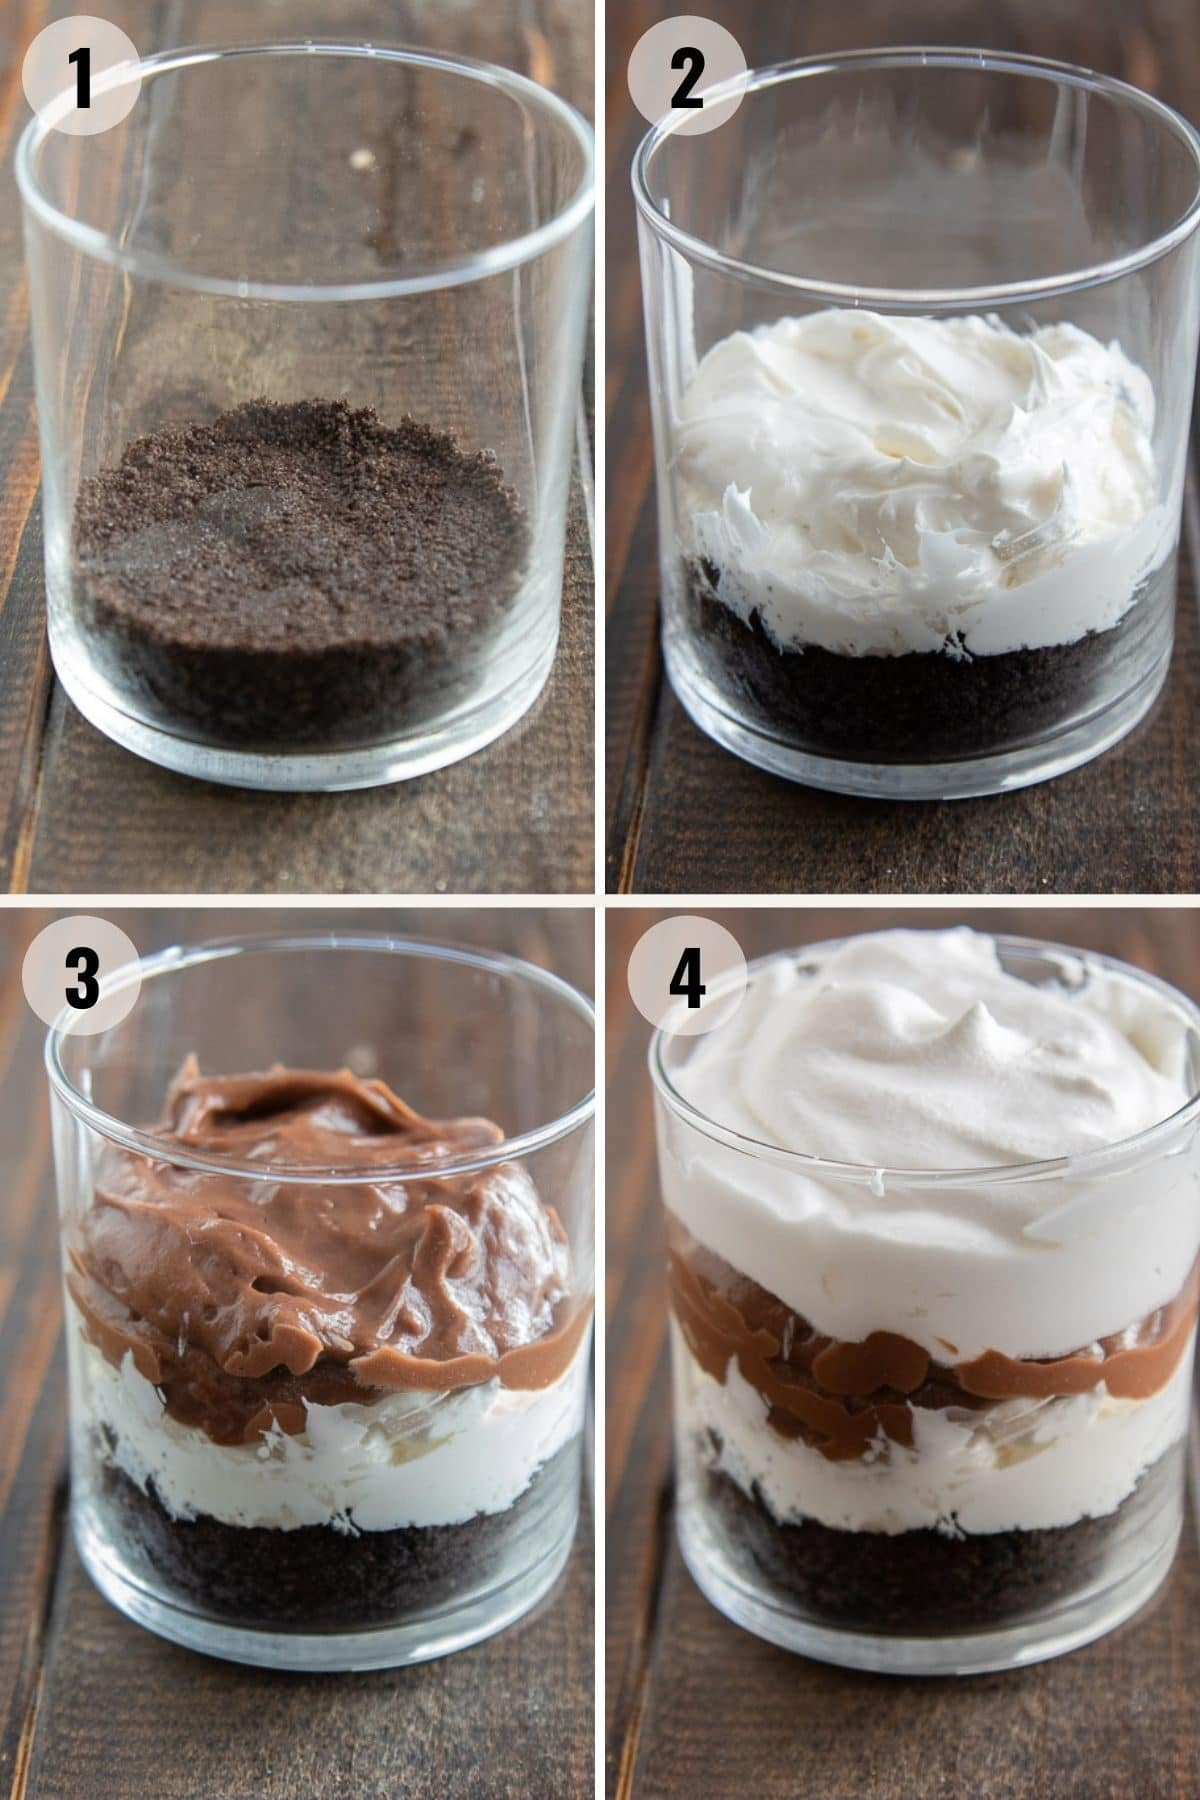 step by step showing how to make oreo dirt pudding